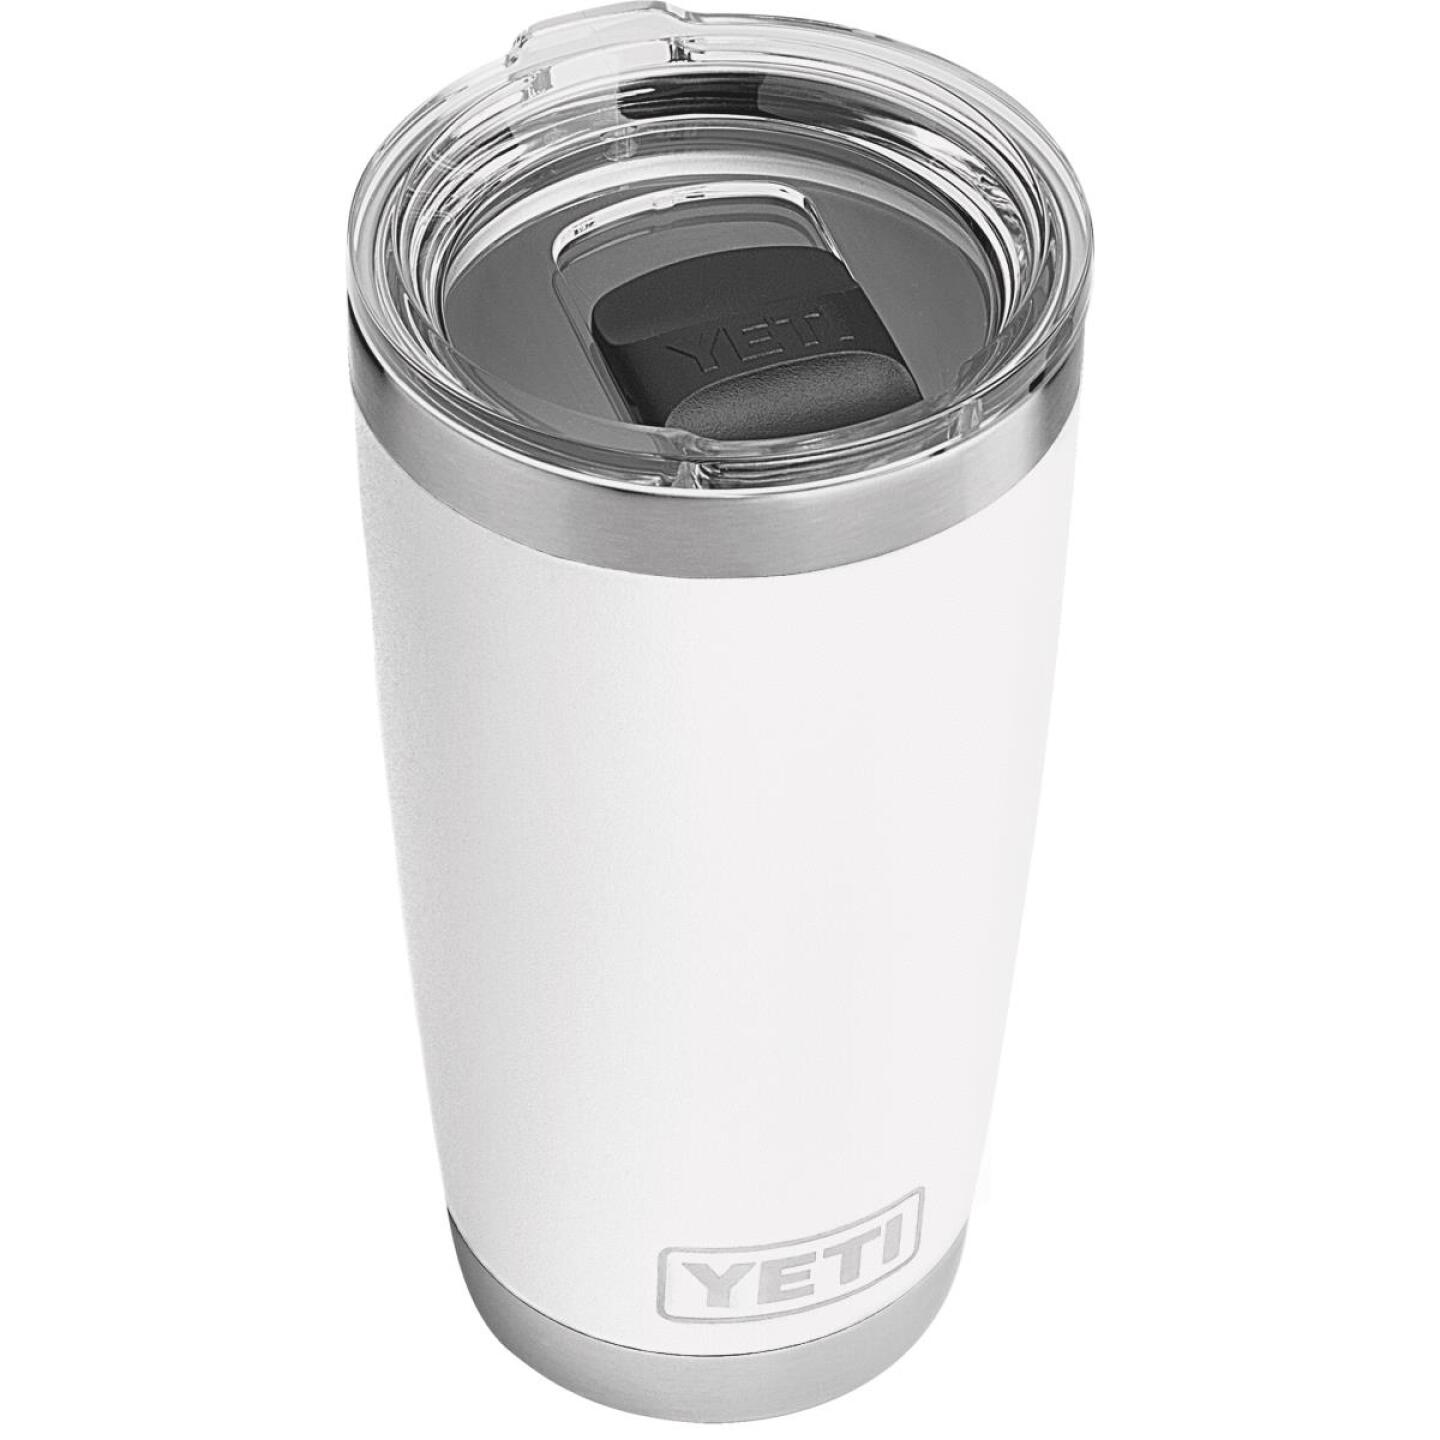 Yeti Rambler 20 Oz. White Stainless Steel Insulated Tumbler with MagSlider Lid Image 1